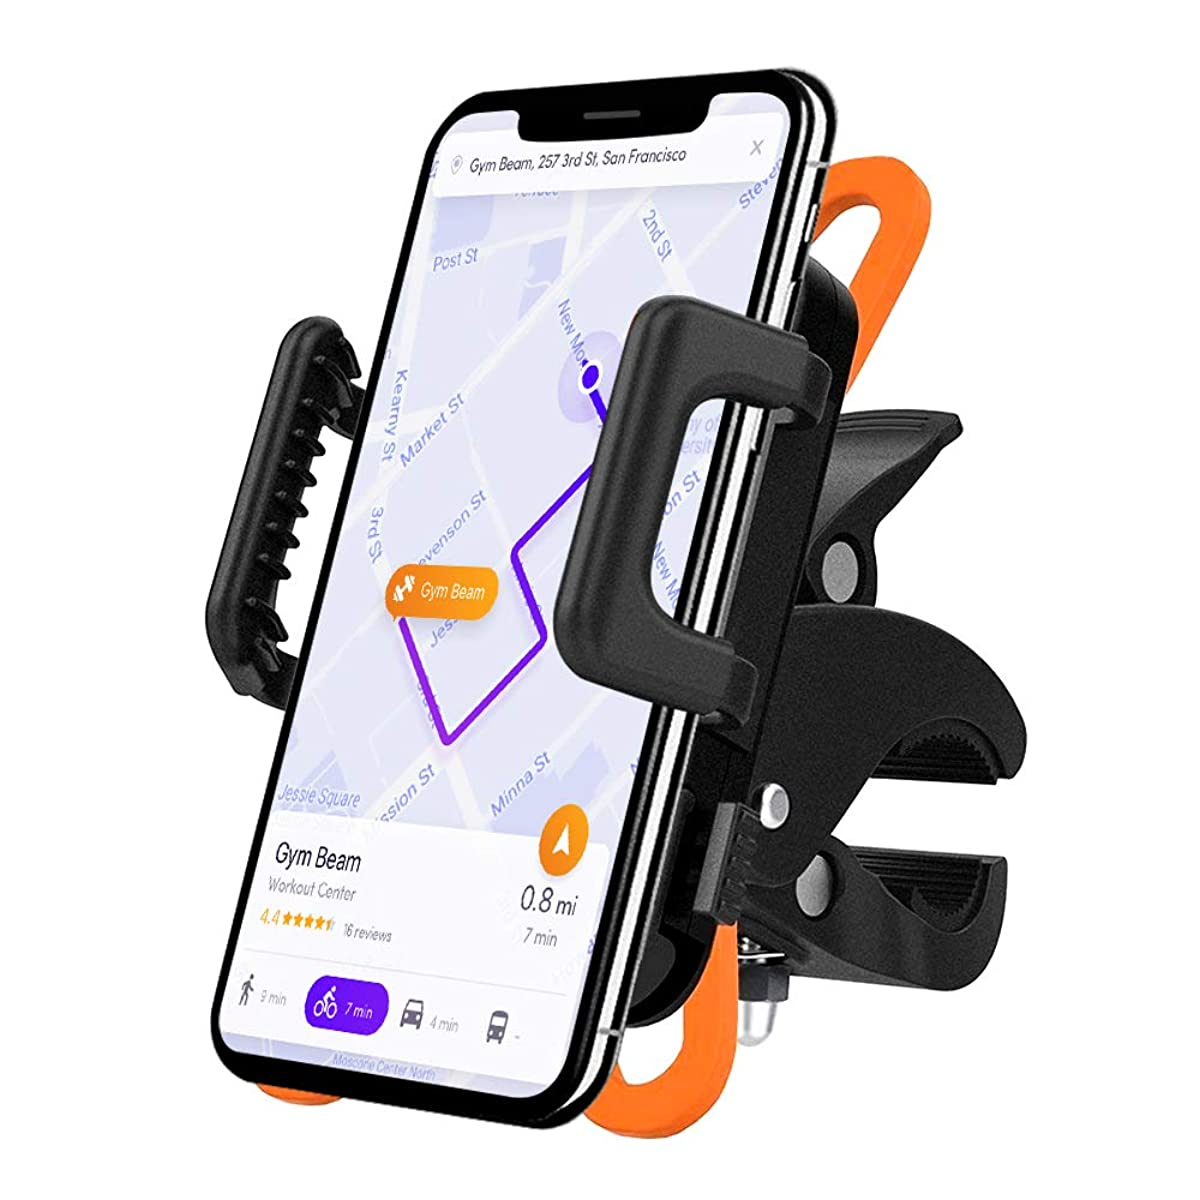 AmazeFan Universal Bike Phone Mount, Bike GPS Holder, 360°Rotation, Anti-Slip Motorcycle Phone Mount, Adjustable, Fits iPhone X, XR, 8 | 8 Plus, 7 | 7 Plus, 6s | 6s Plus, Galaxy S9, S8, S7 and More